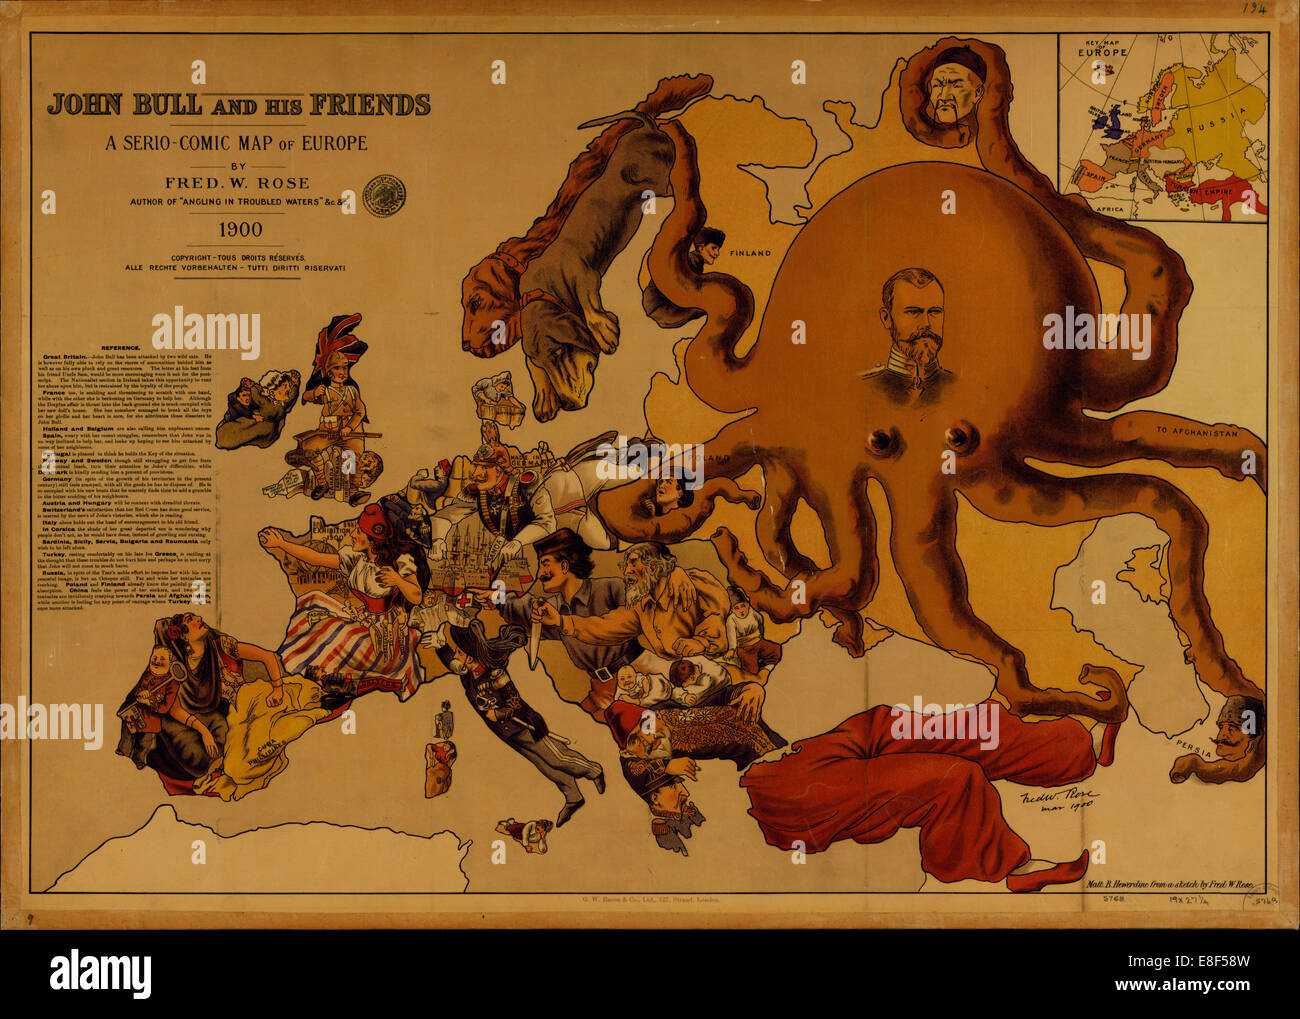 John Bull and his Friends. A Serio-Comic Map of Europe. Artist: Fred W. Rose (active End of 19th cen.) - Stock Image